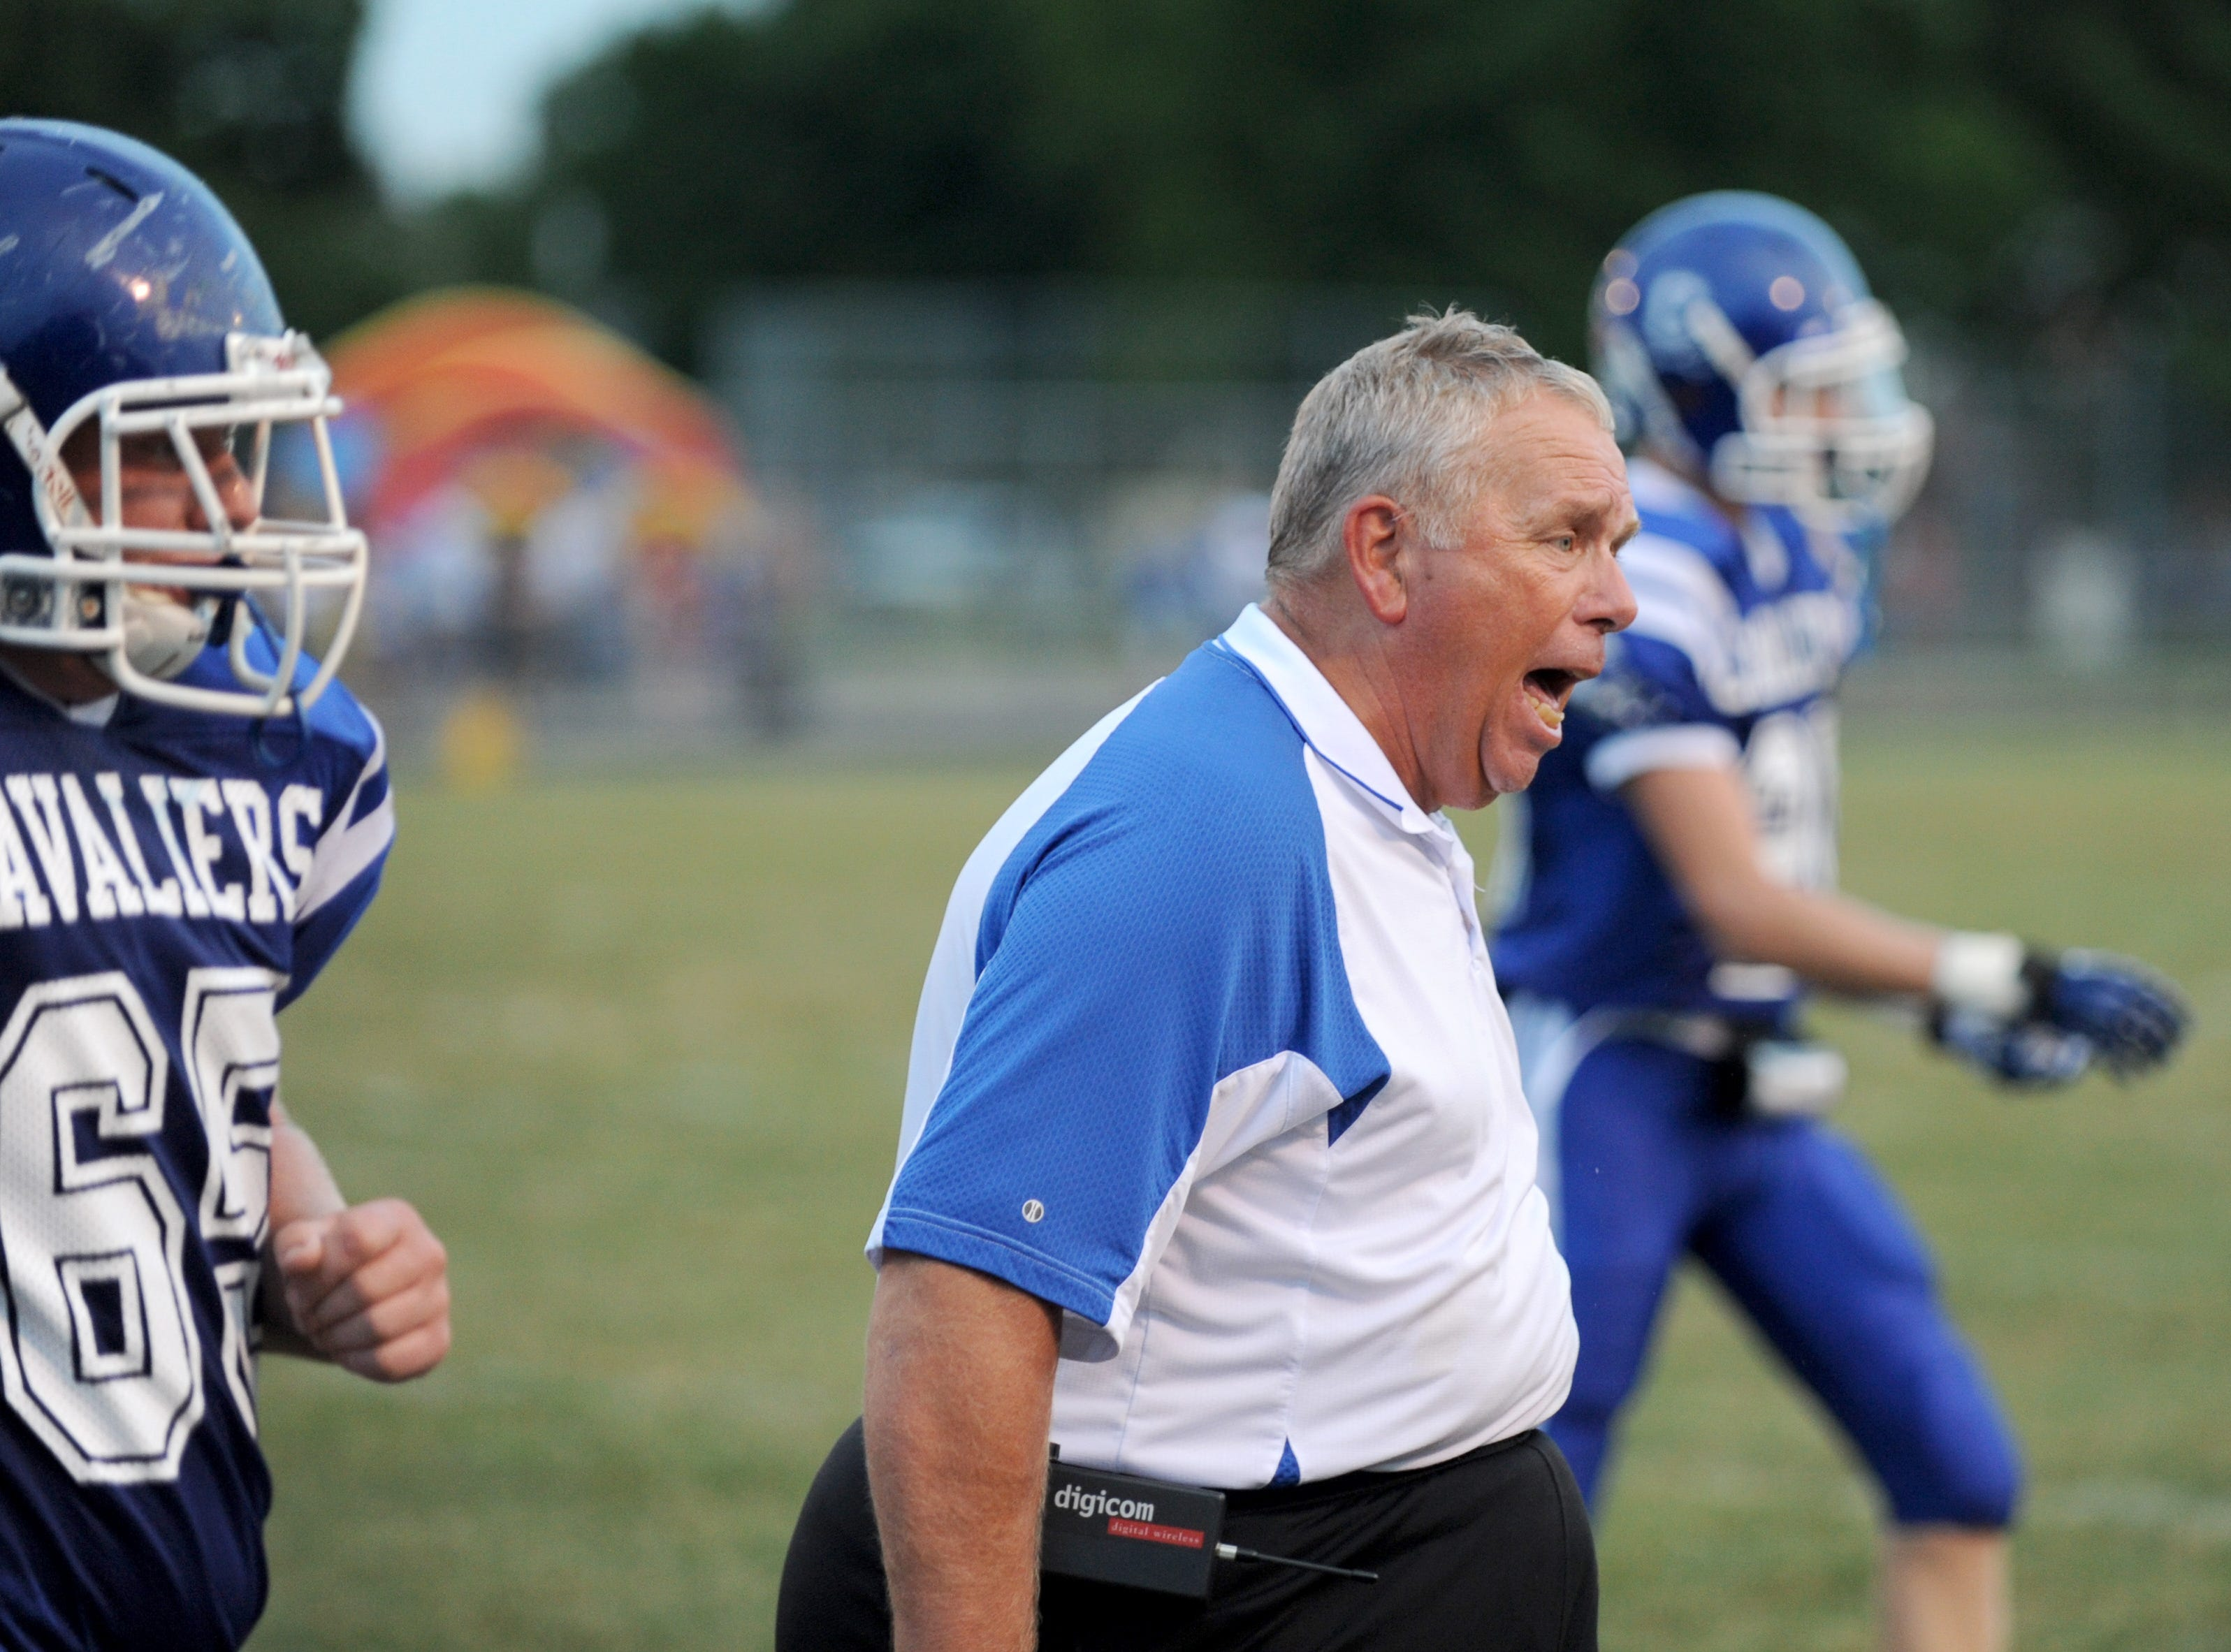 Chillicothe head coach Ron Hinton coaches the Cavaliers against Big Walnut High School in the 2012 season home opener in August at Herrnstein Field.